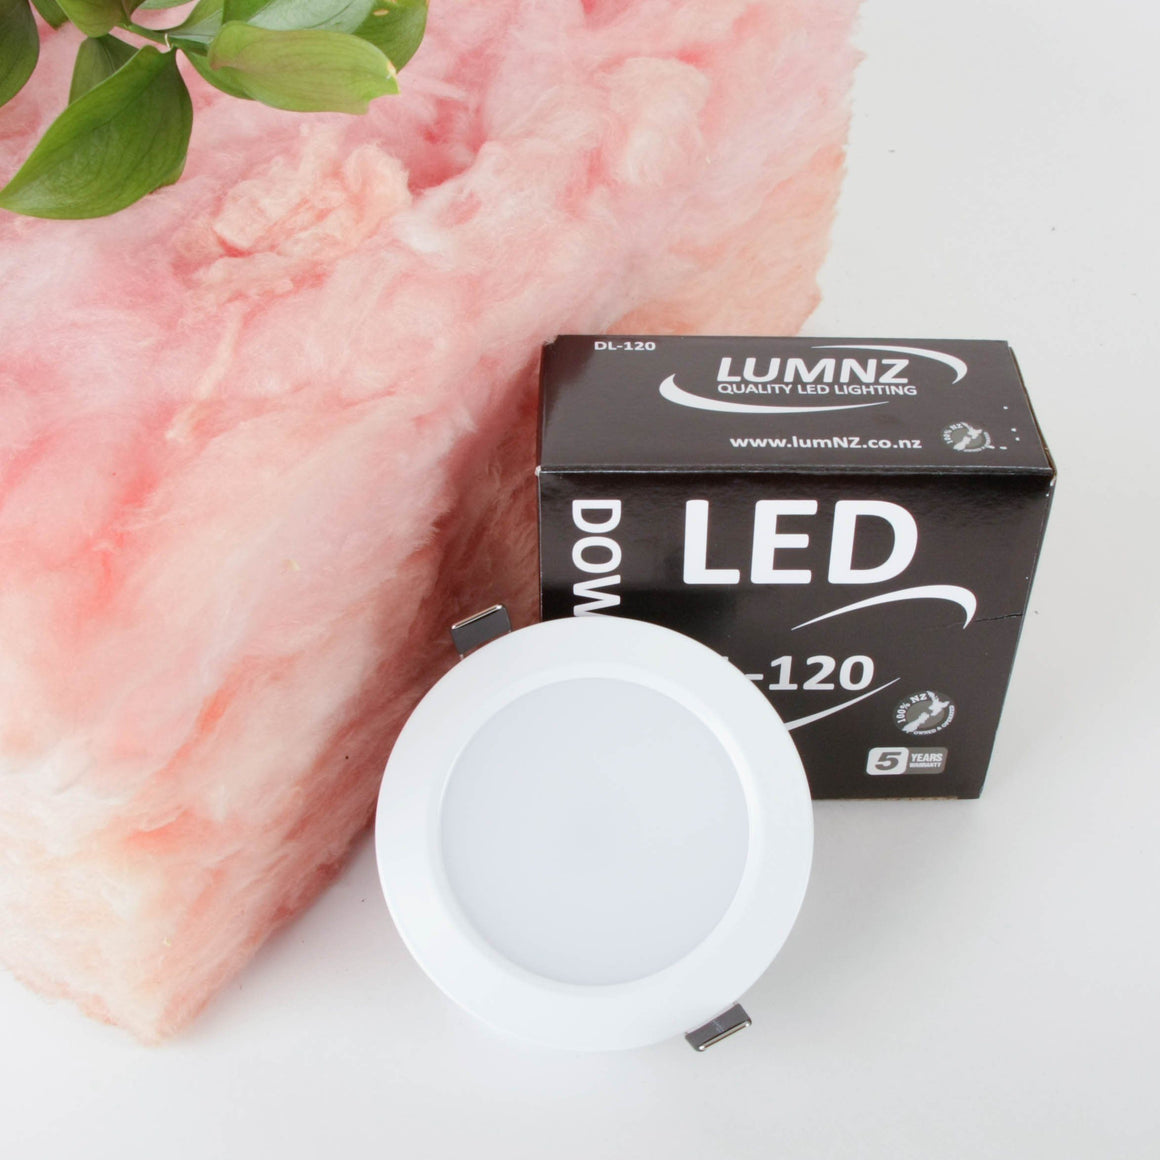 LED Dimmable Downlight - LumNZ